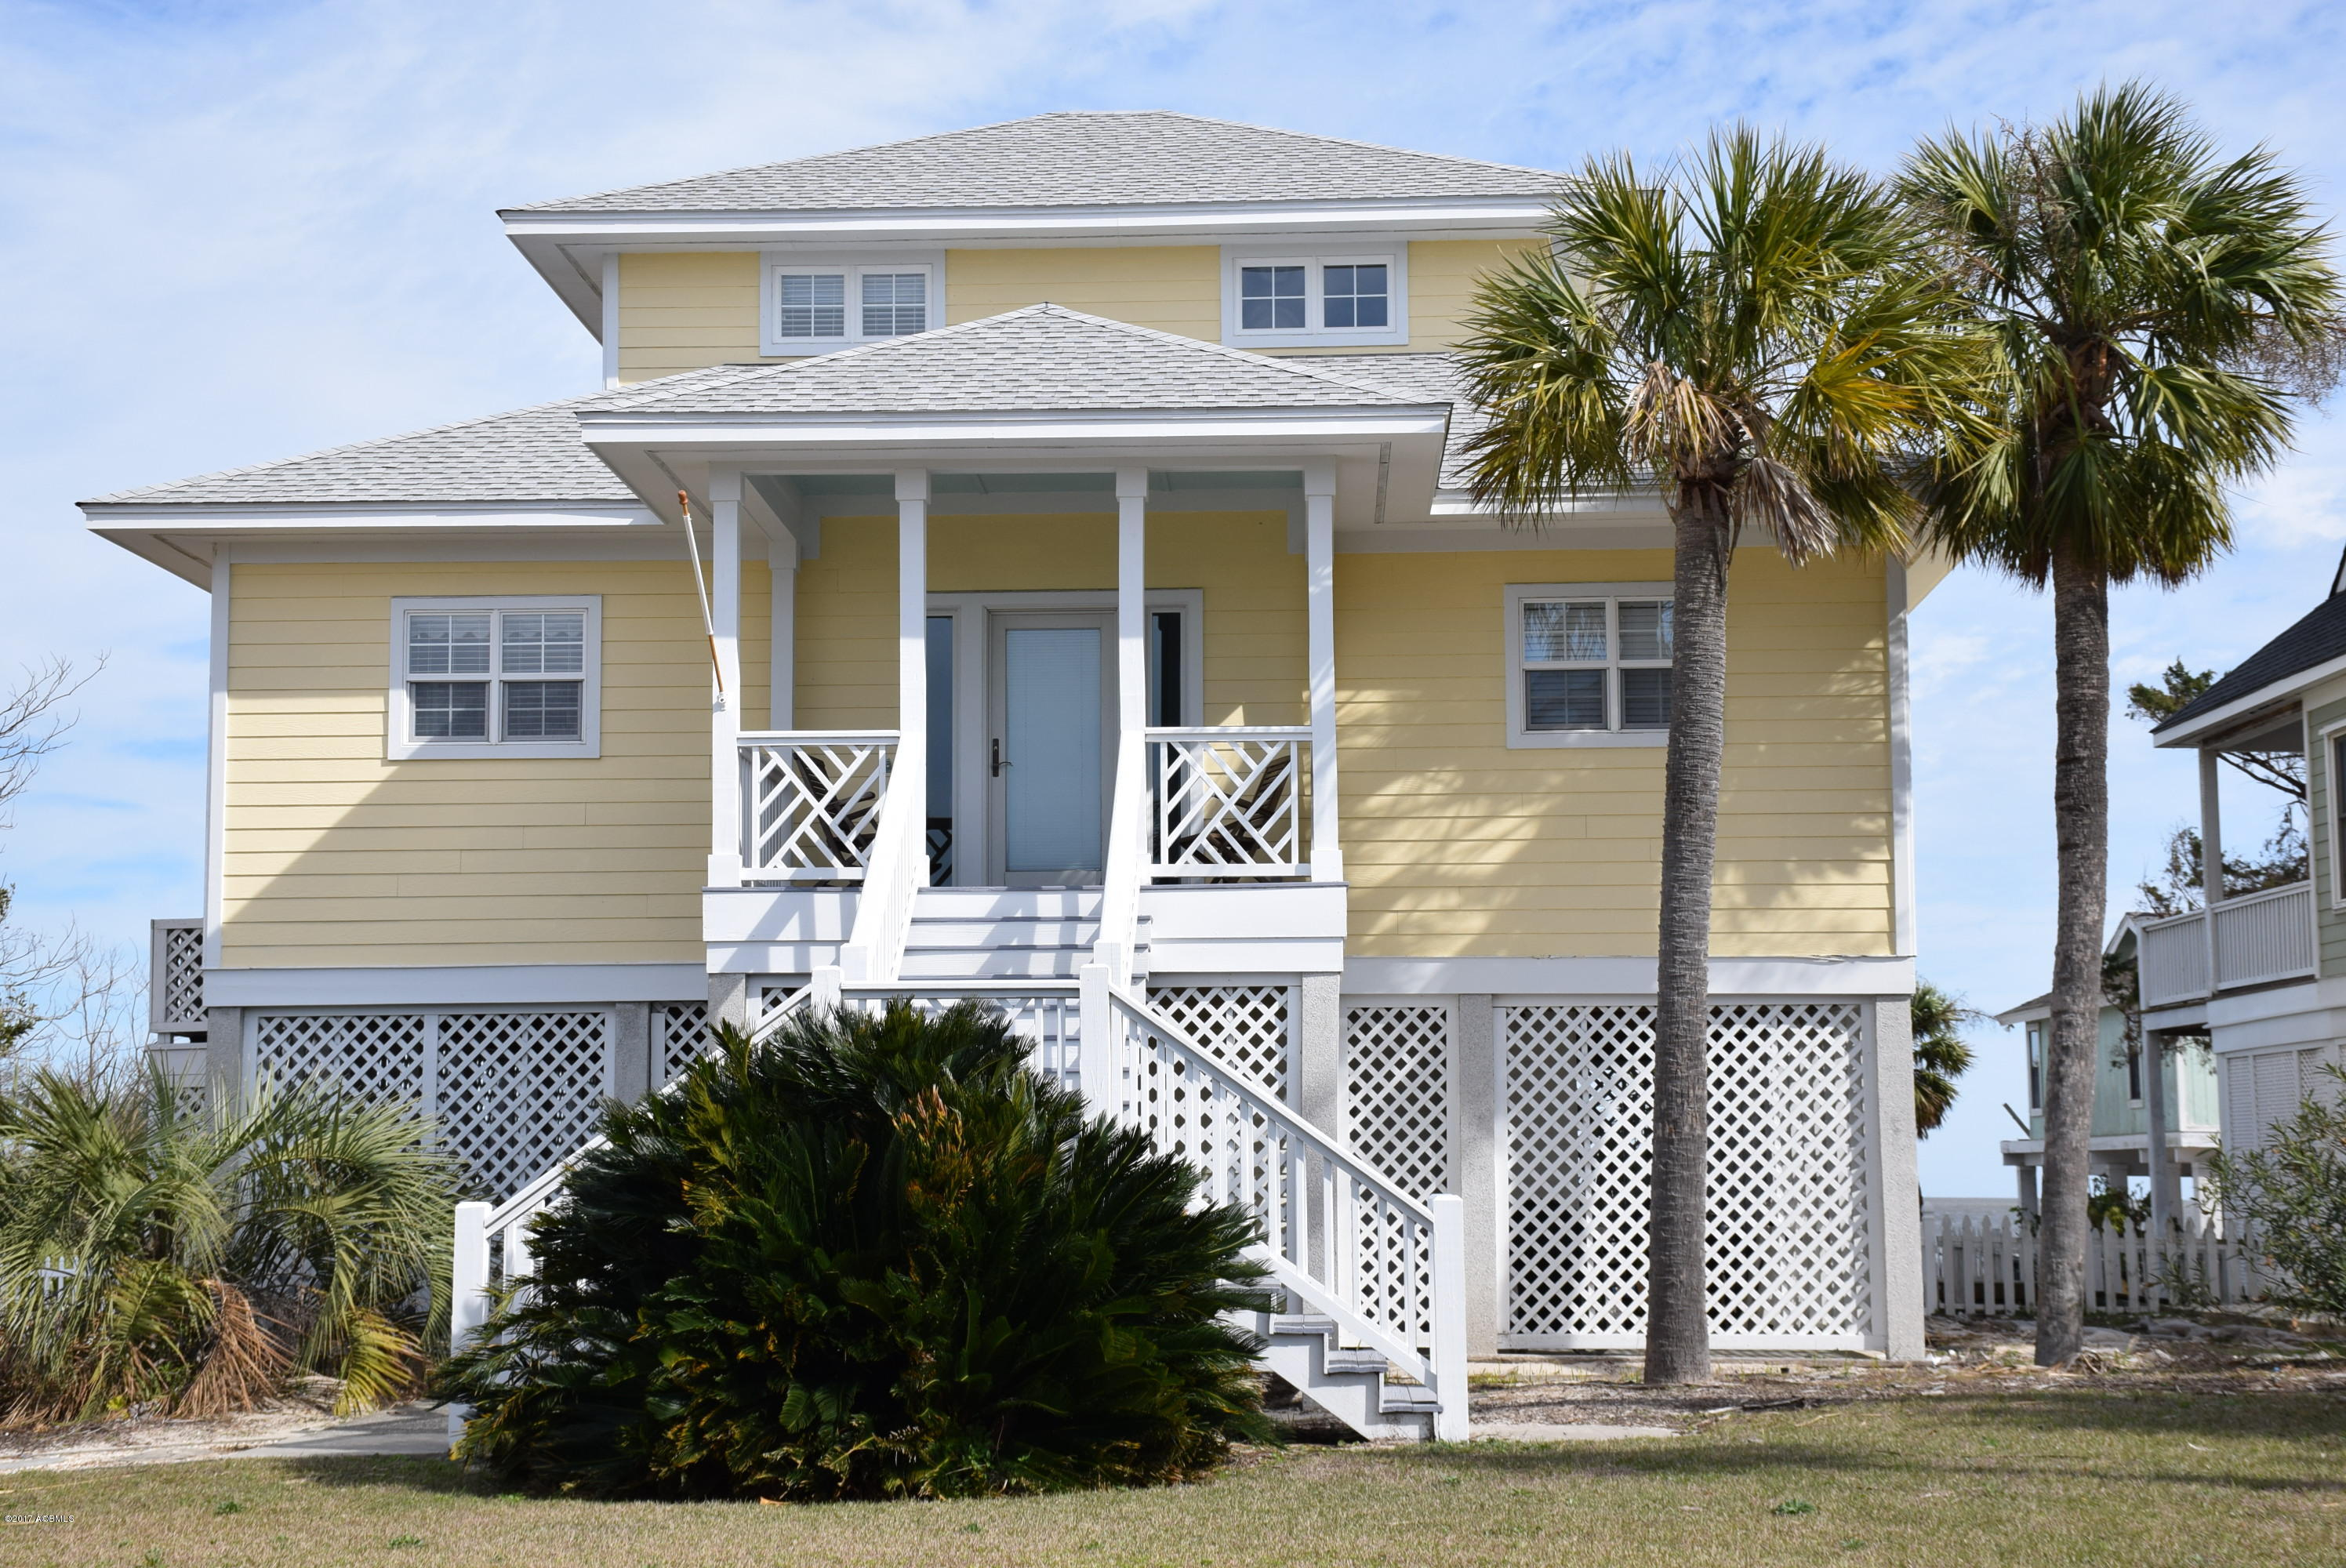 72 N Harbor Drive, Harbor Island, South Carolina